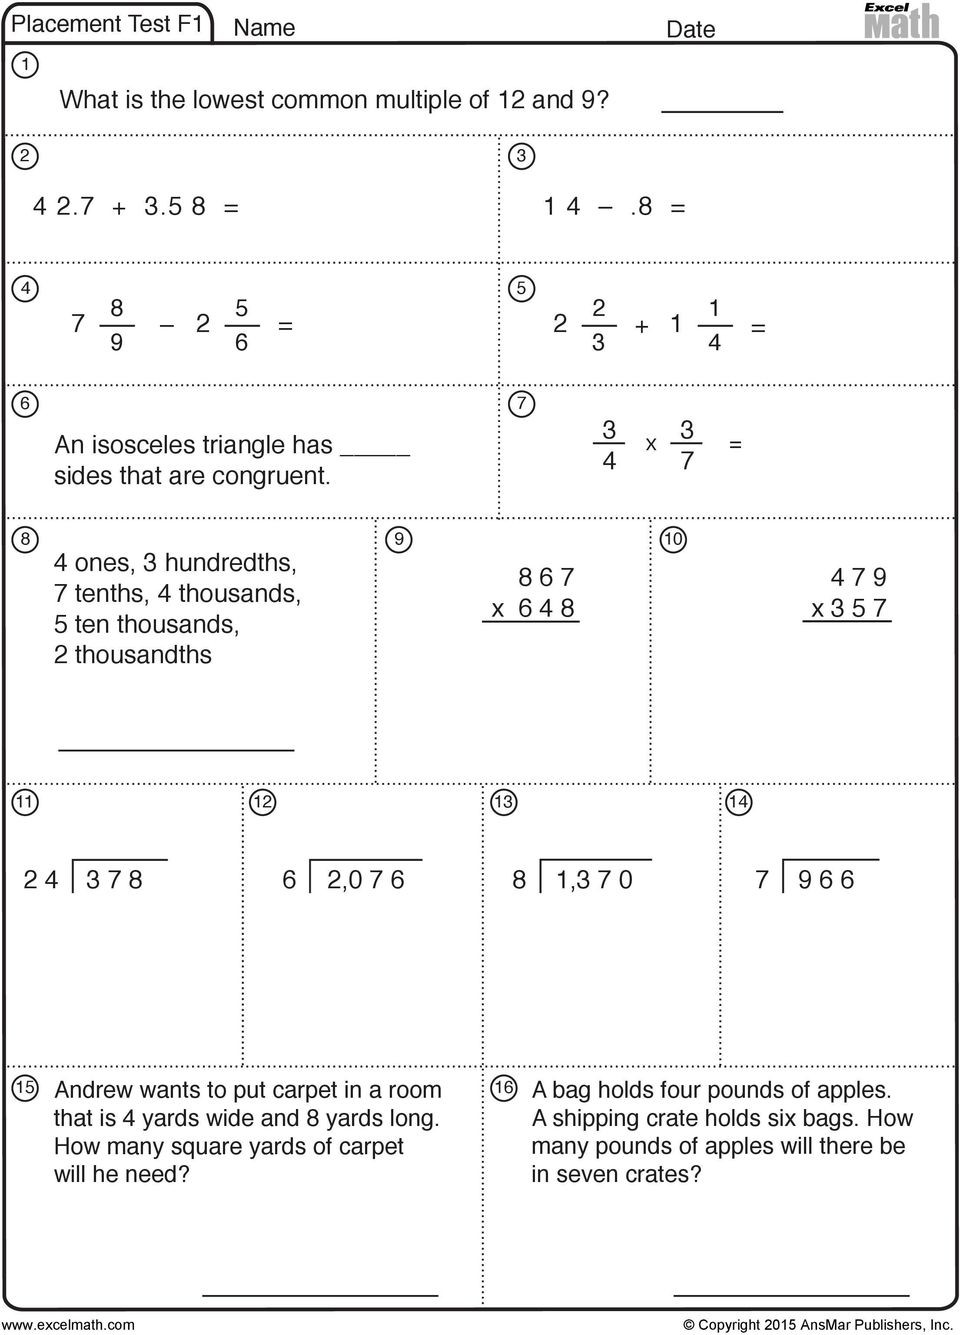 3d Shapes Worksheets 2nd Grade Math Facts Basketball First Grade Hidden Picture Math